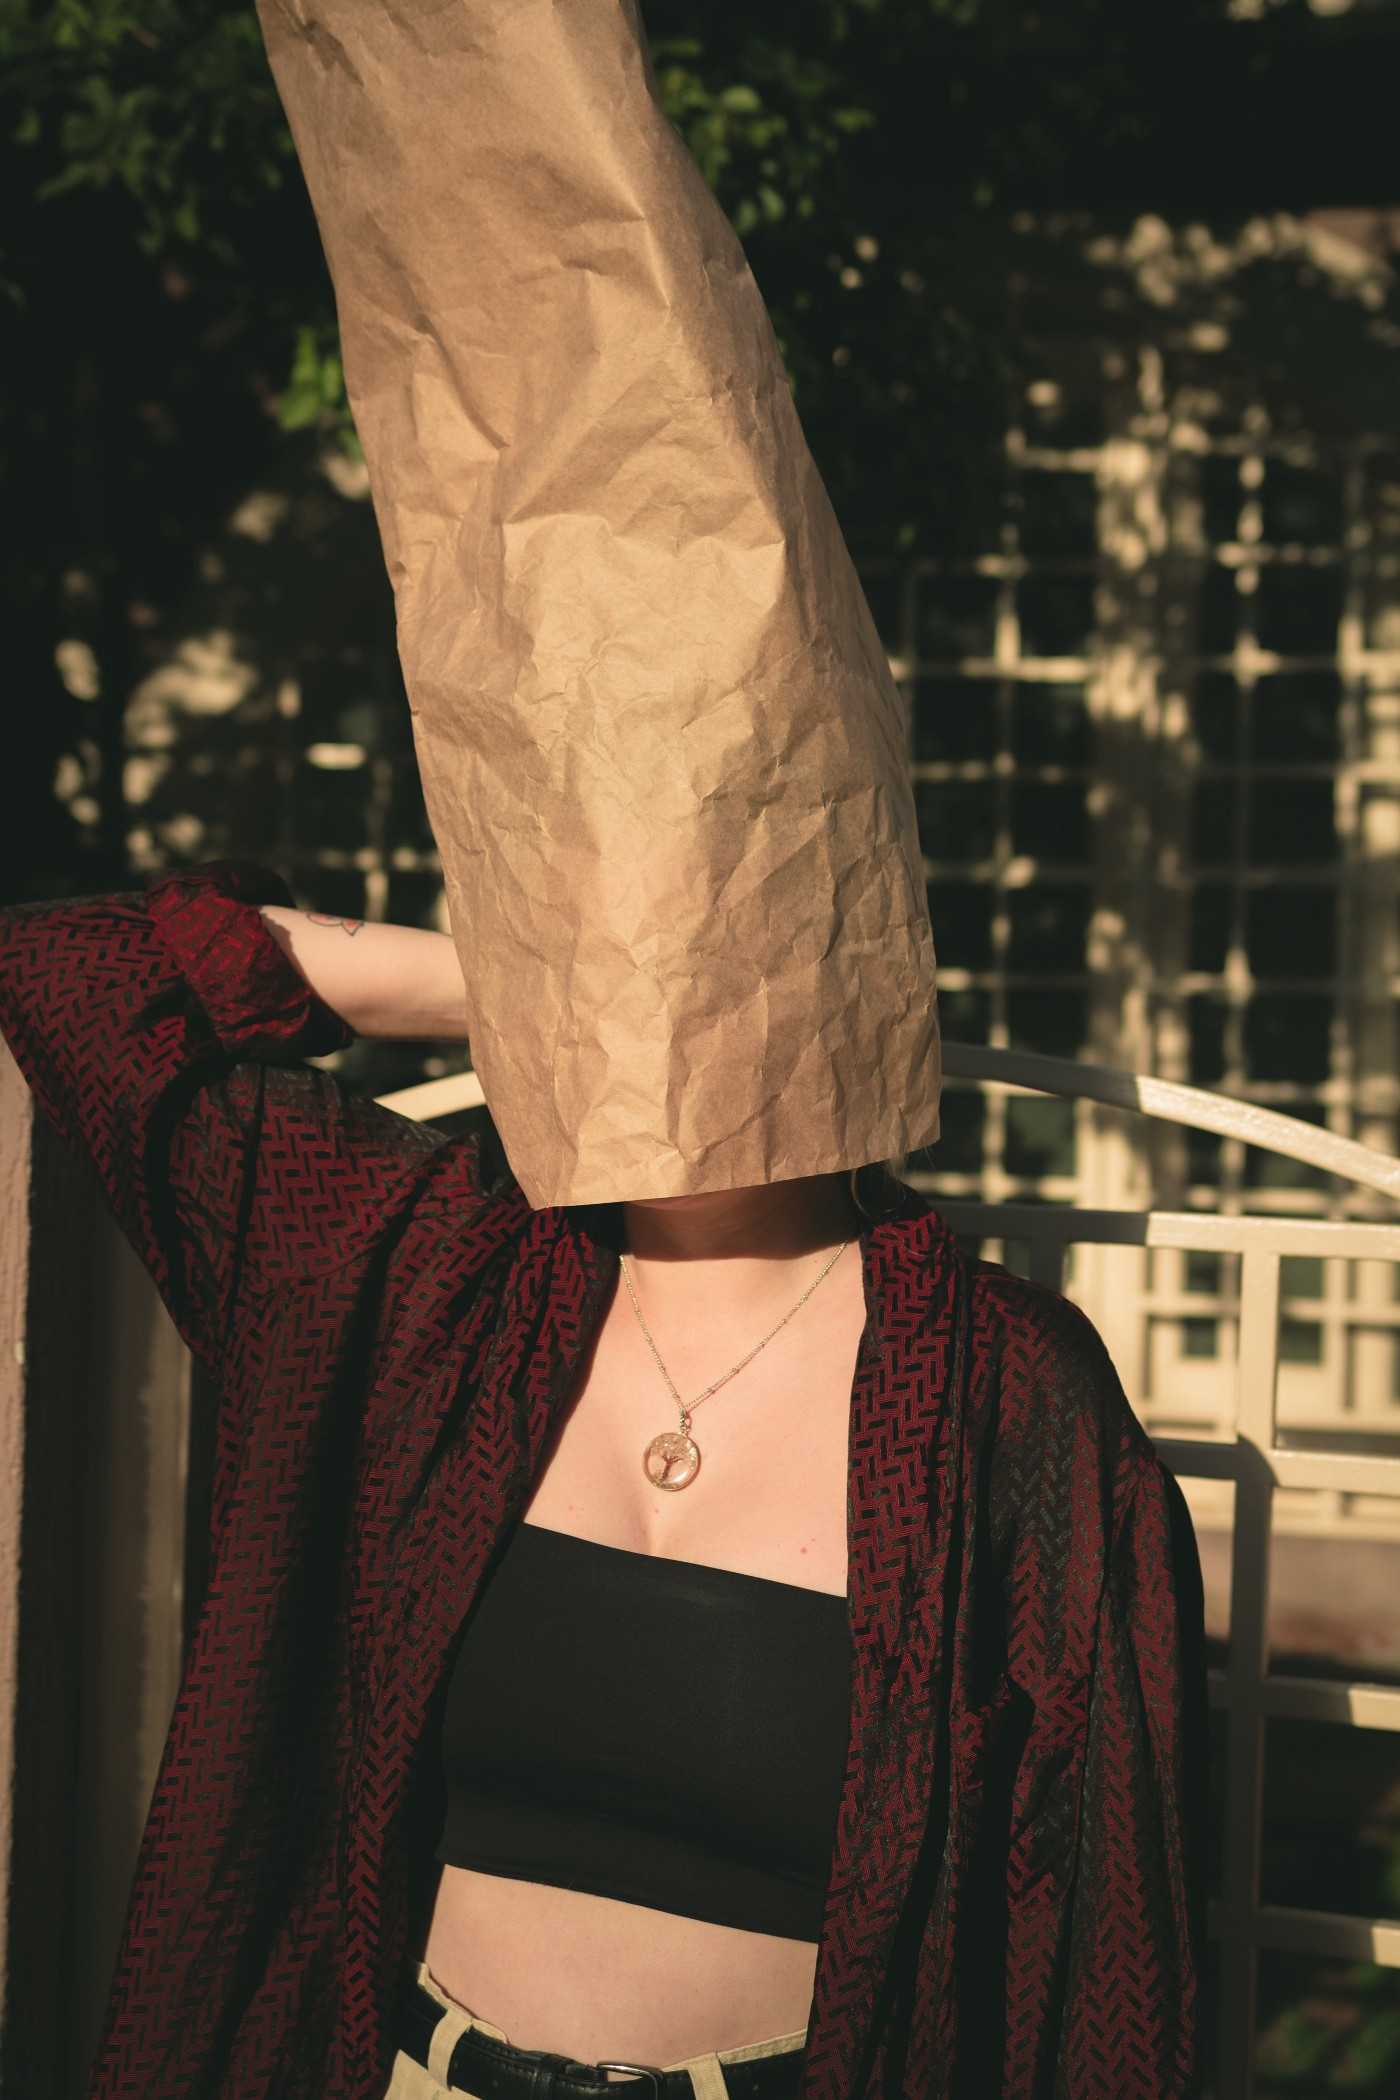 Woman with a paper bag over her head.